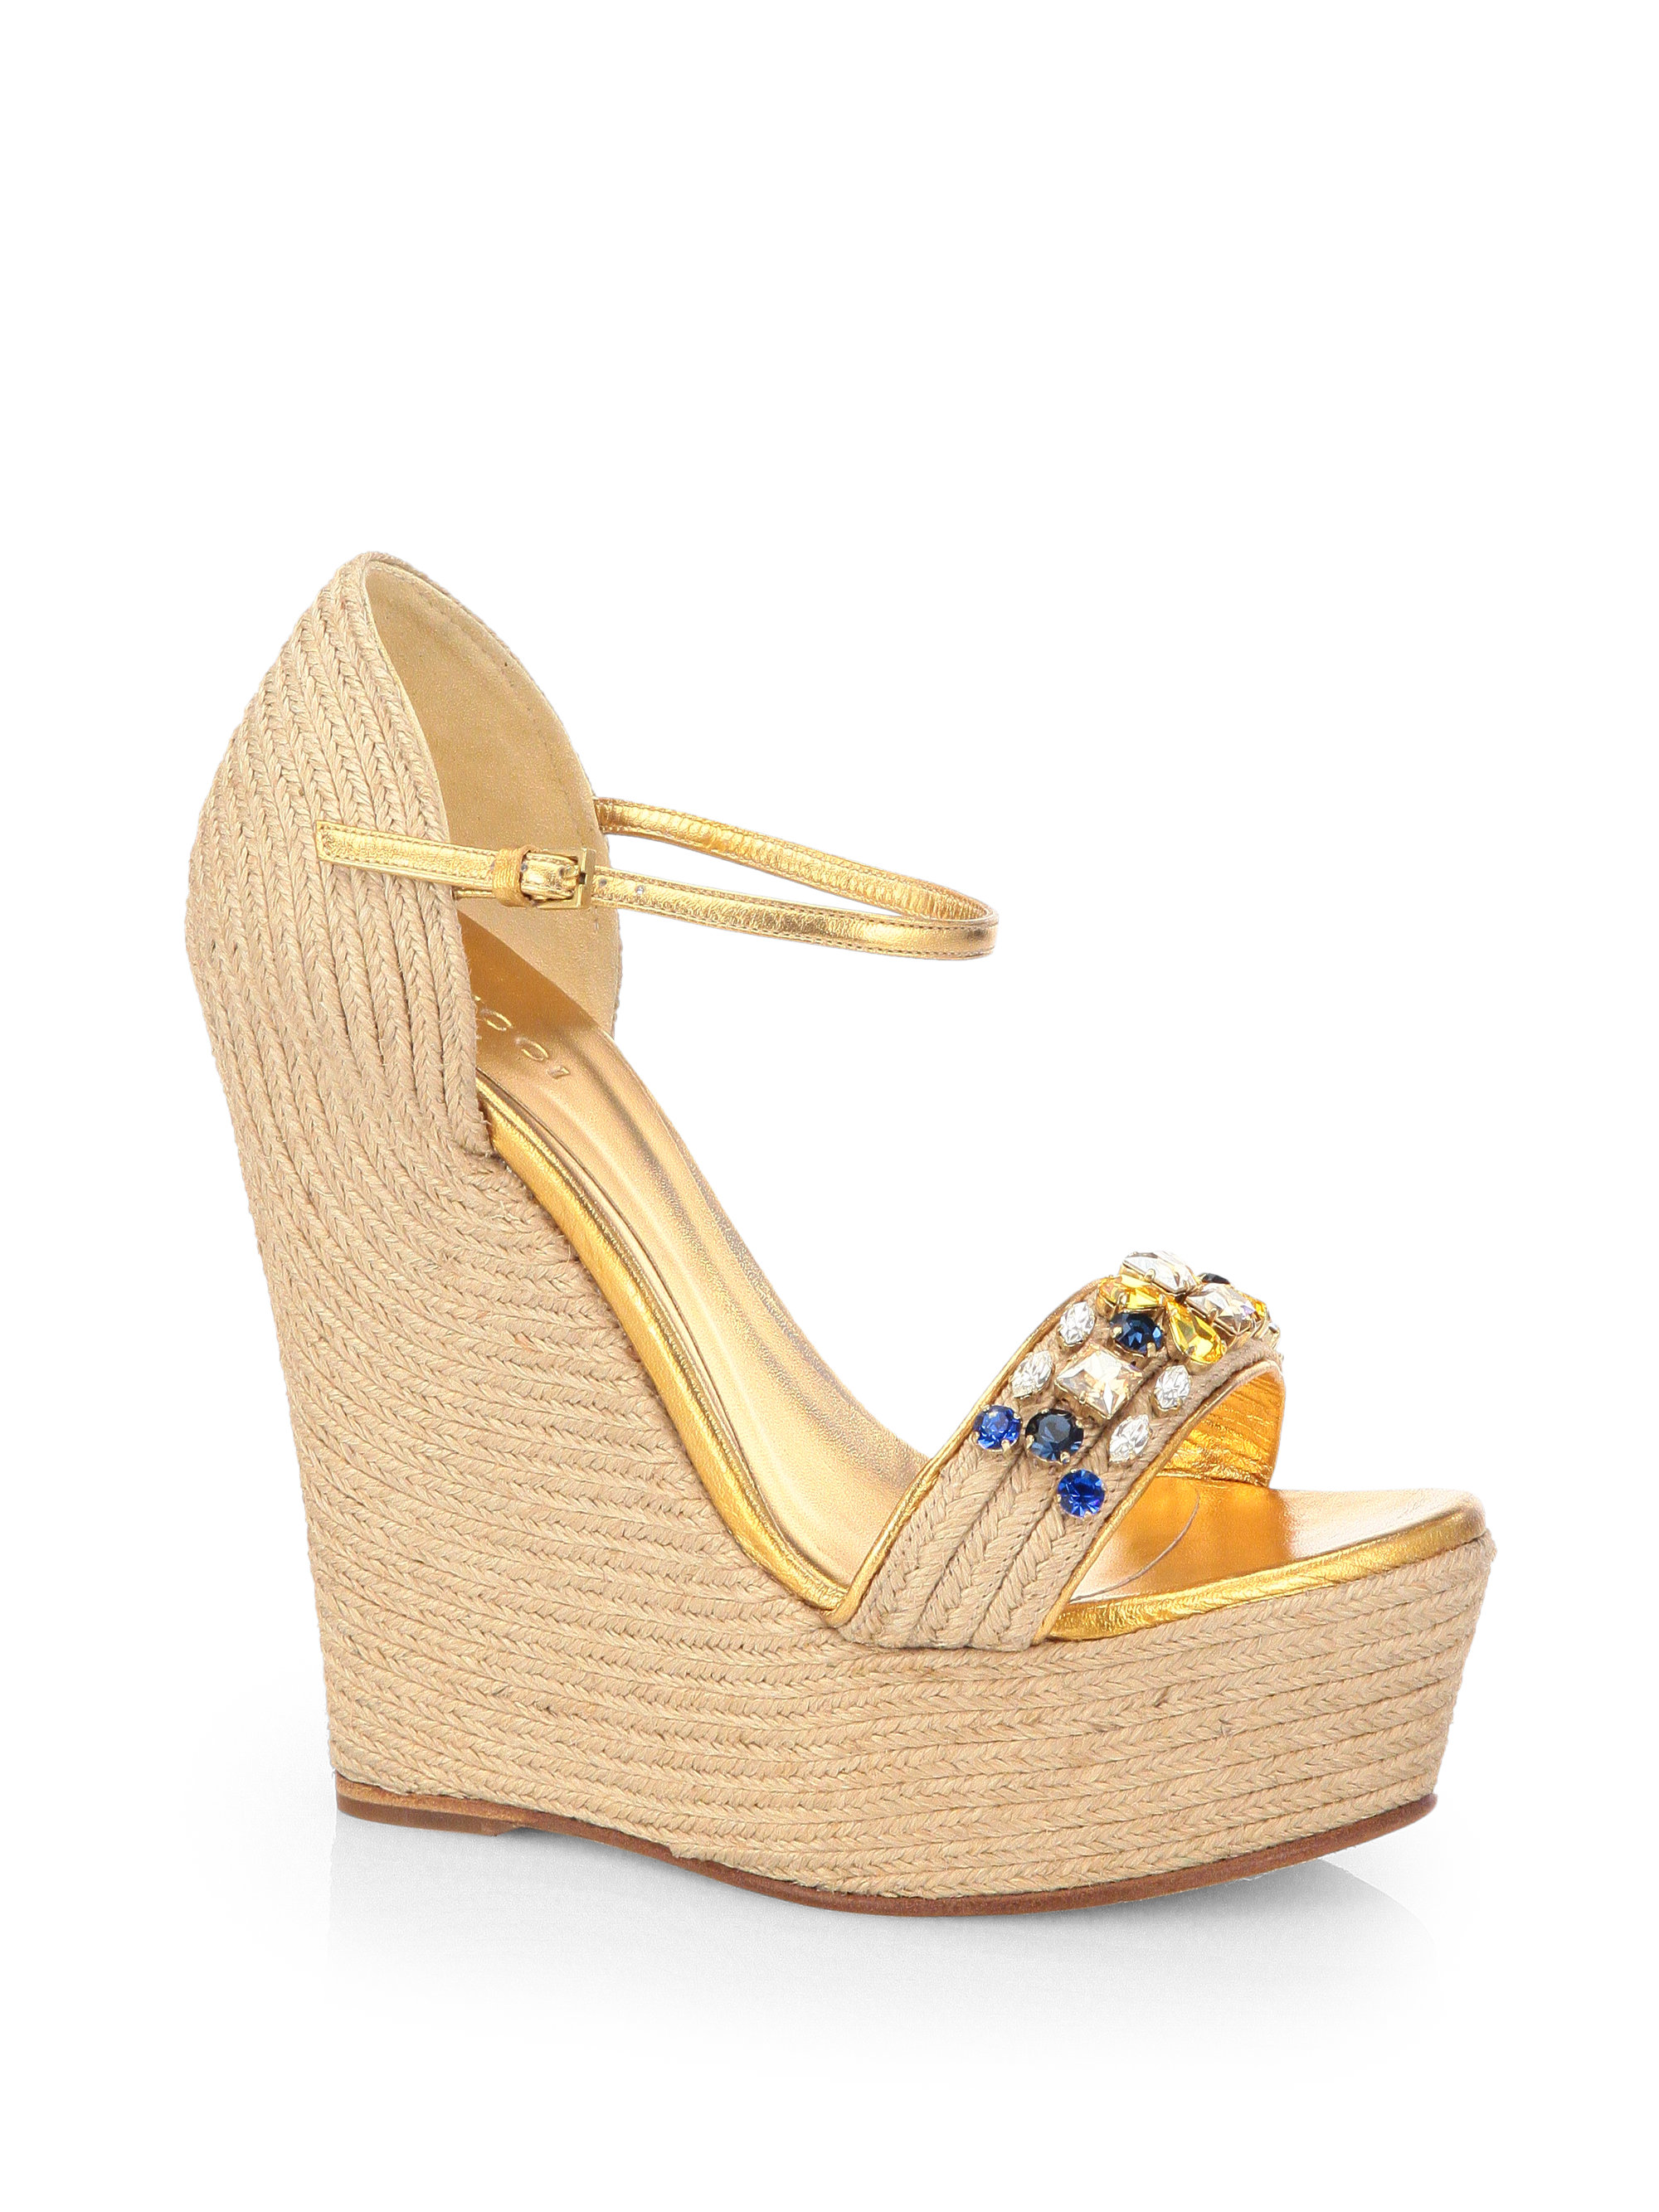 413c3f9c92a2 Gucci Jeweled Espadrille Wedge Sandals in Natural - Lyst